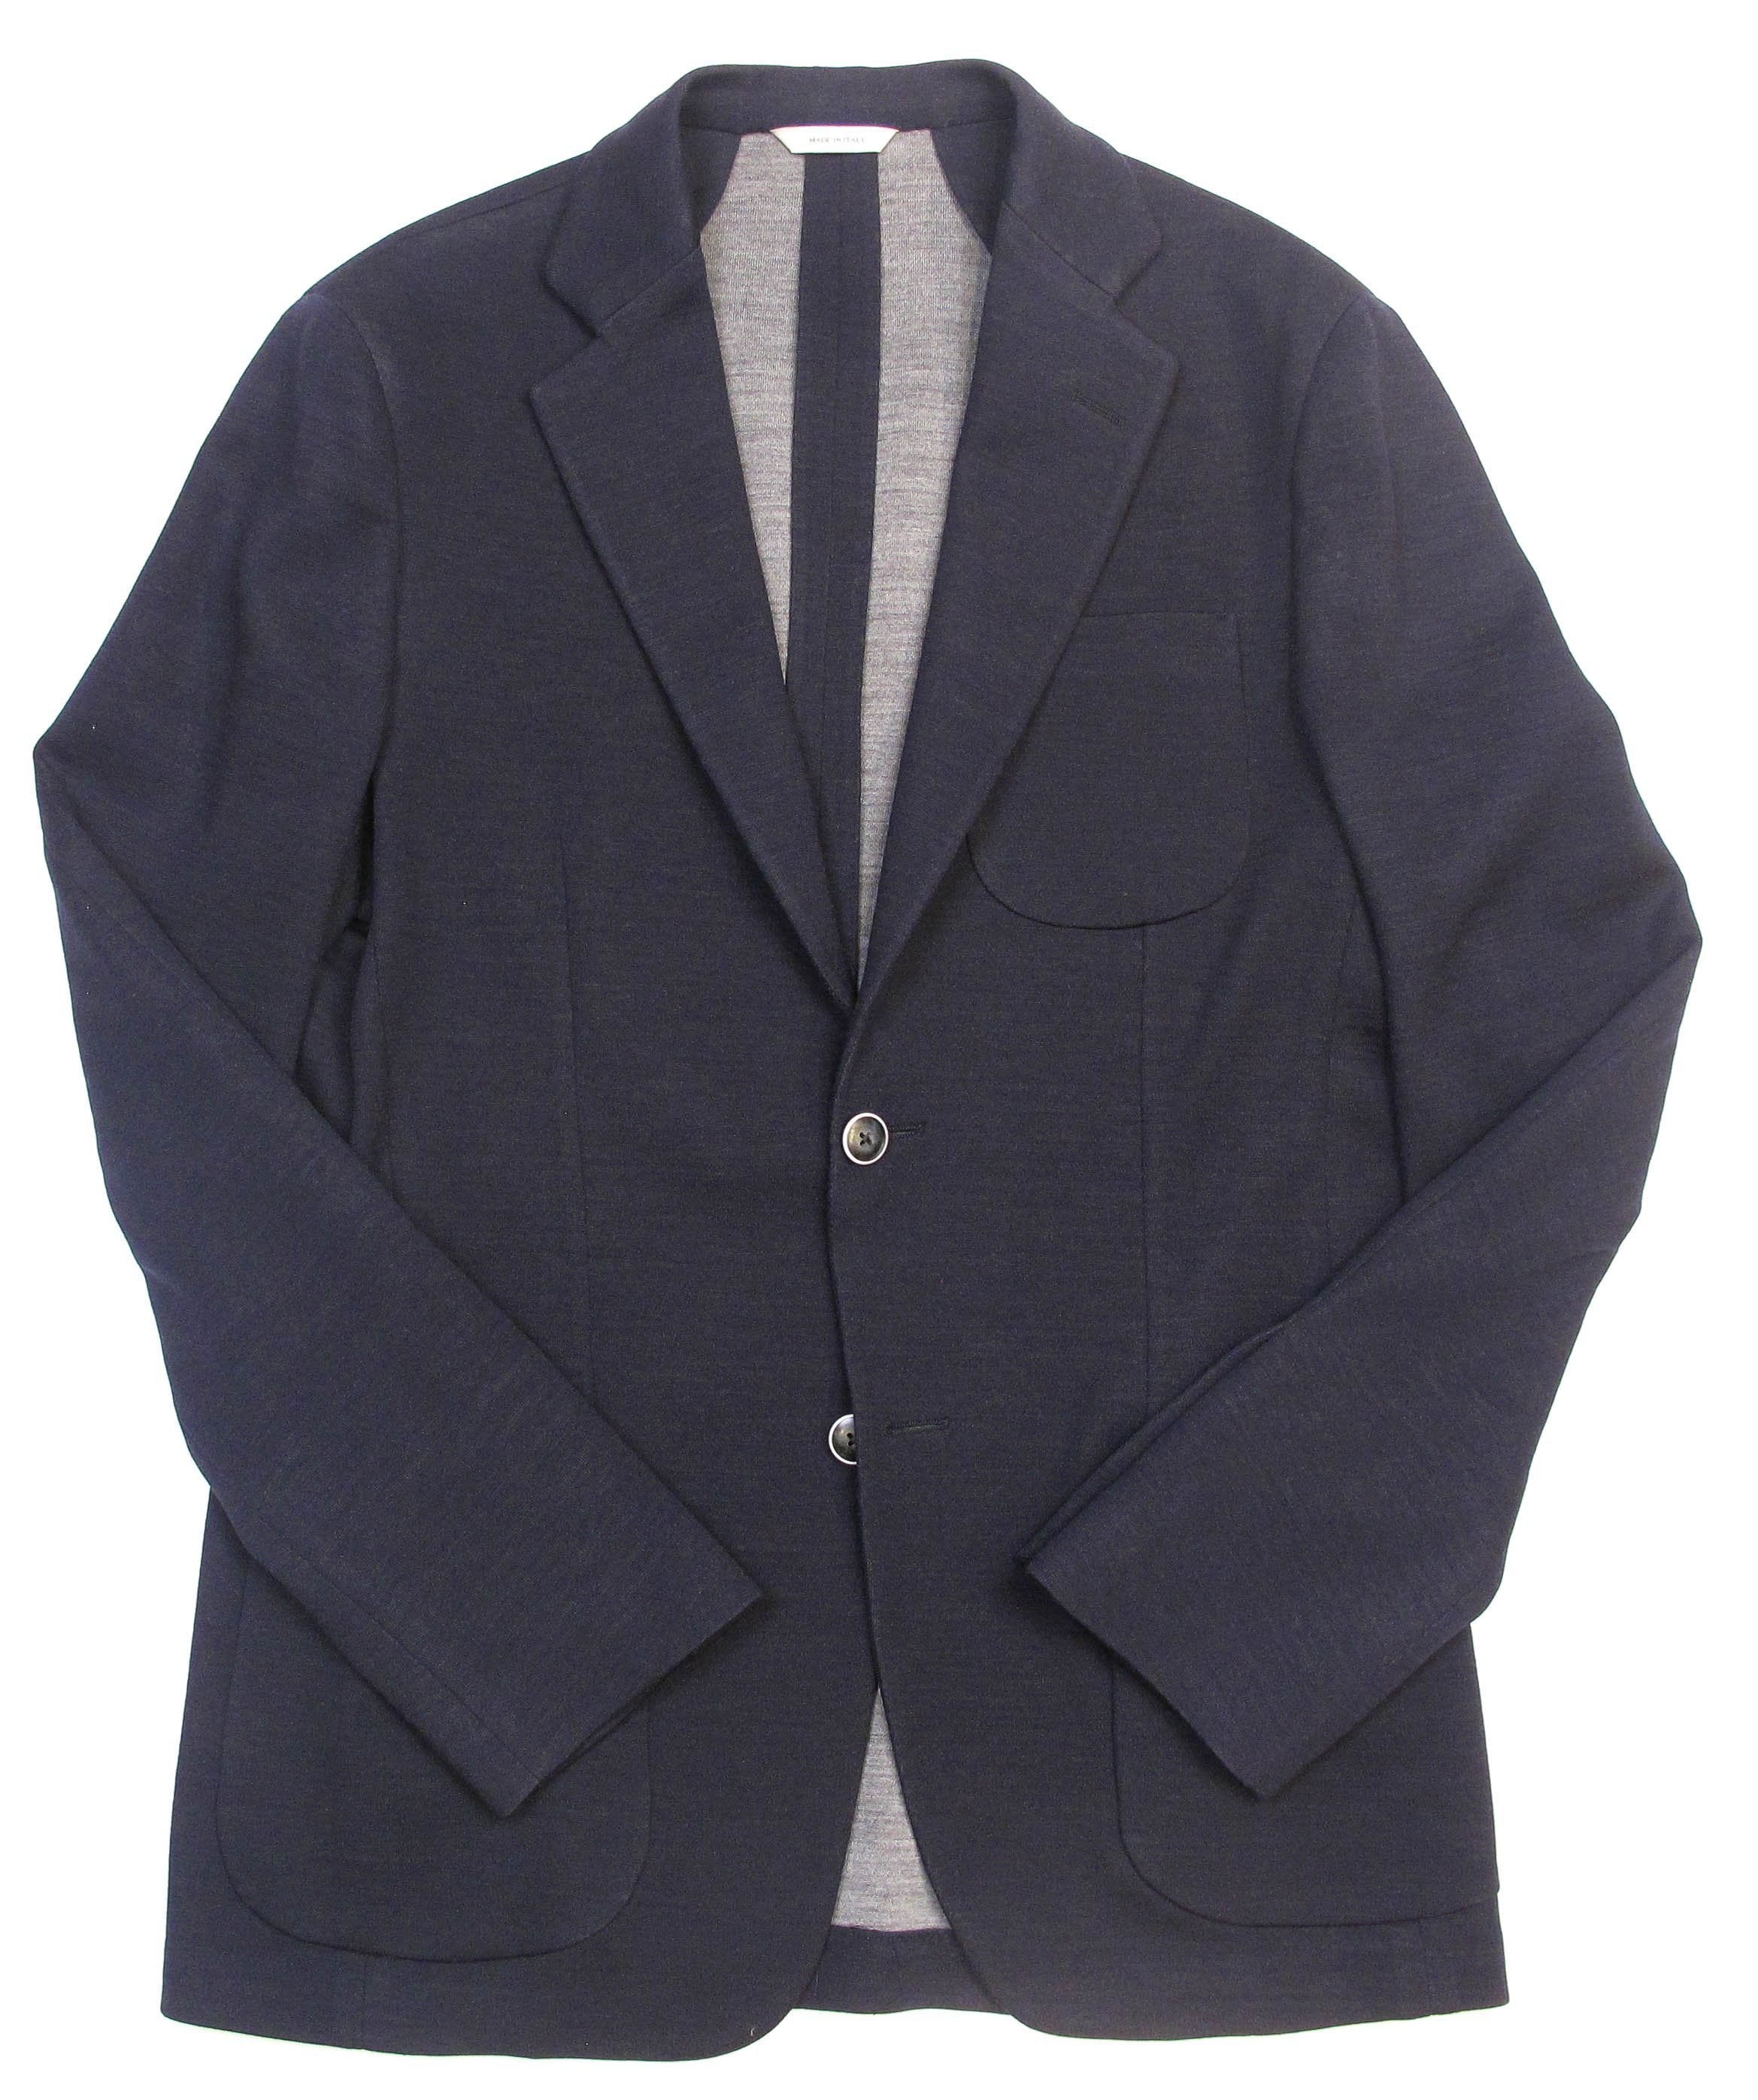 Solid Double Faced Jersey Jacket - Navy